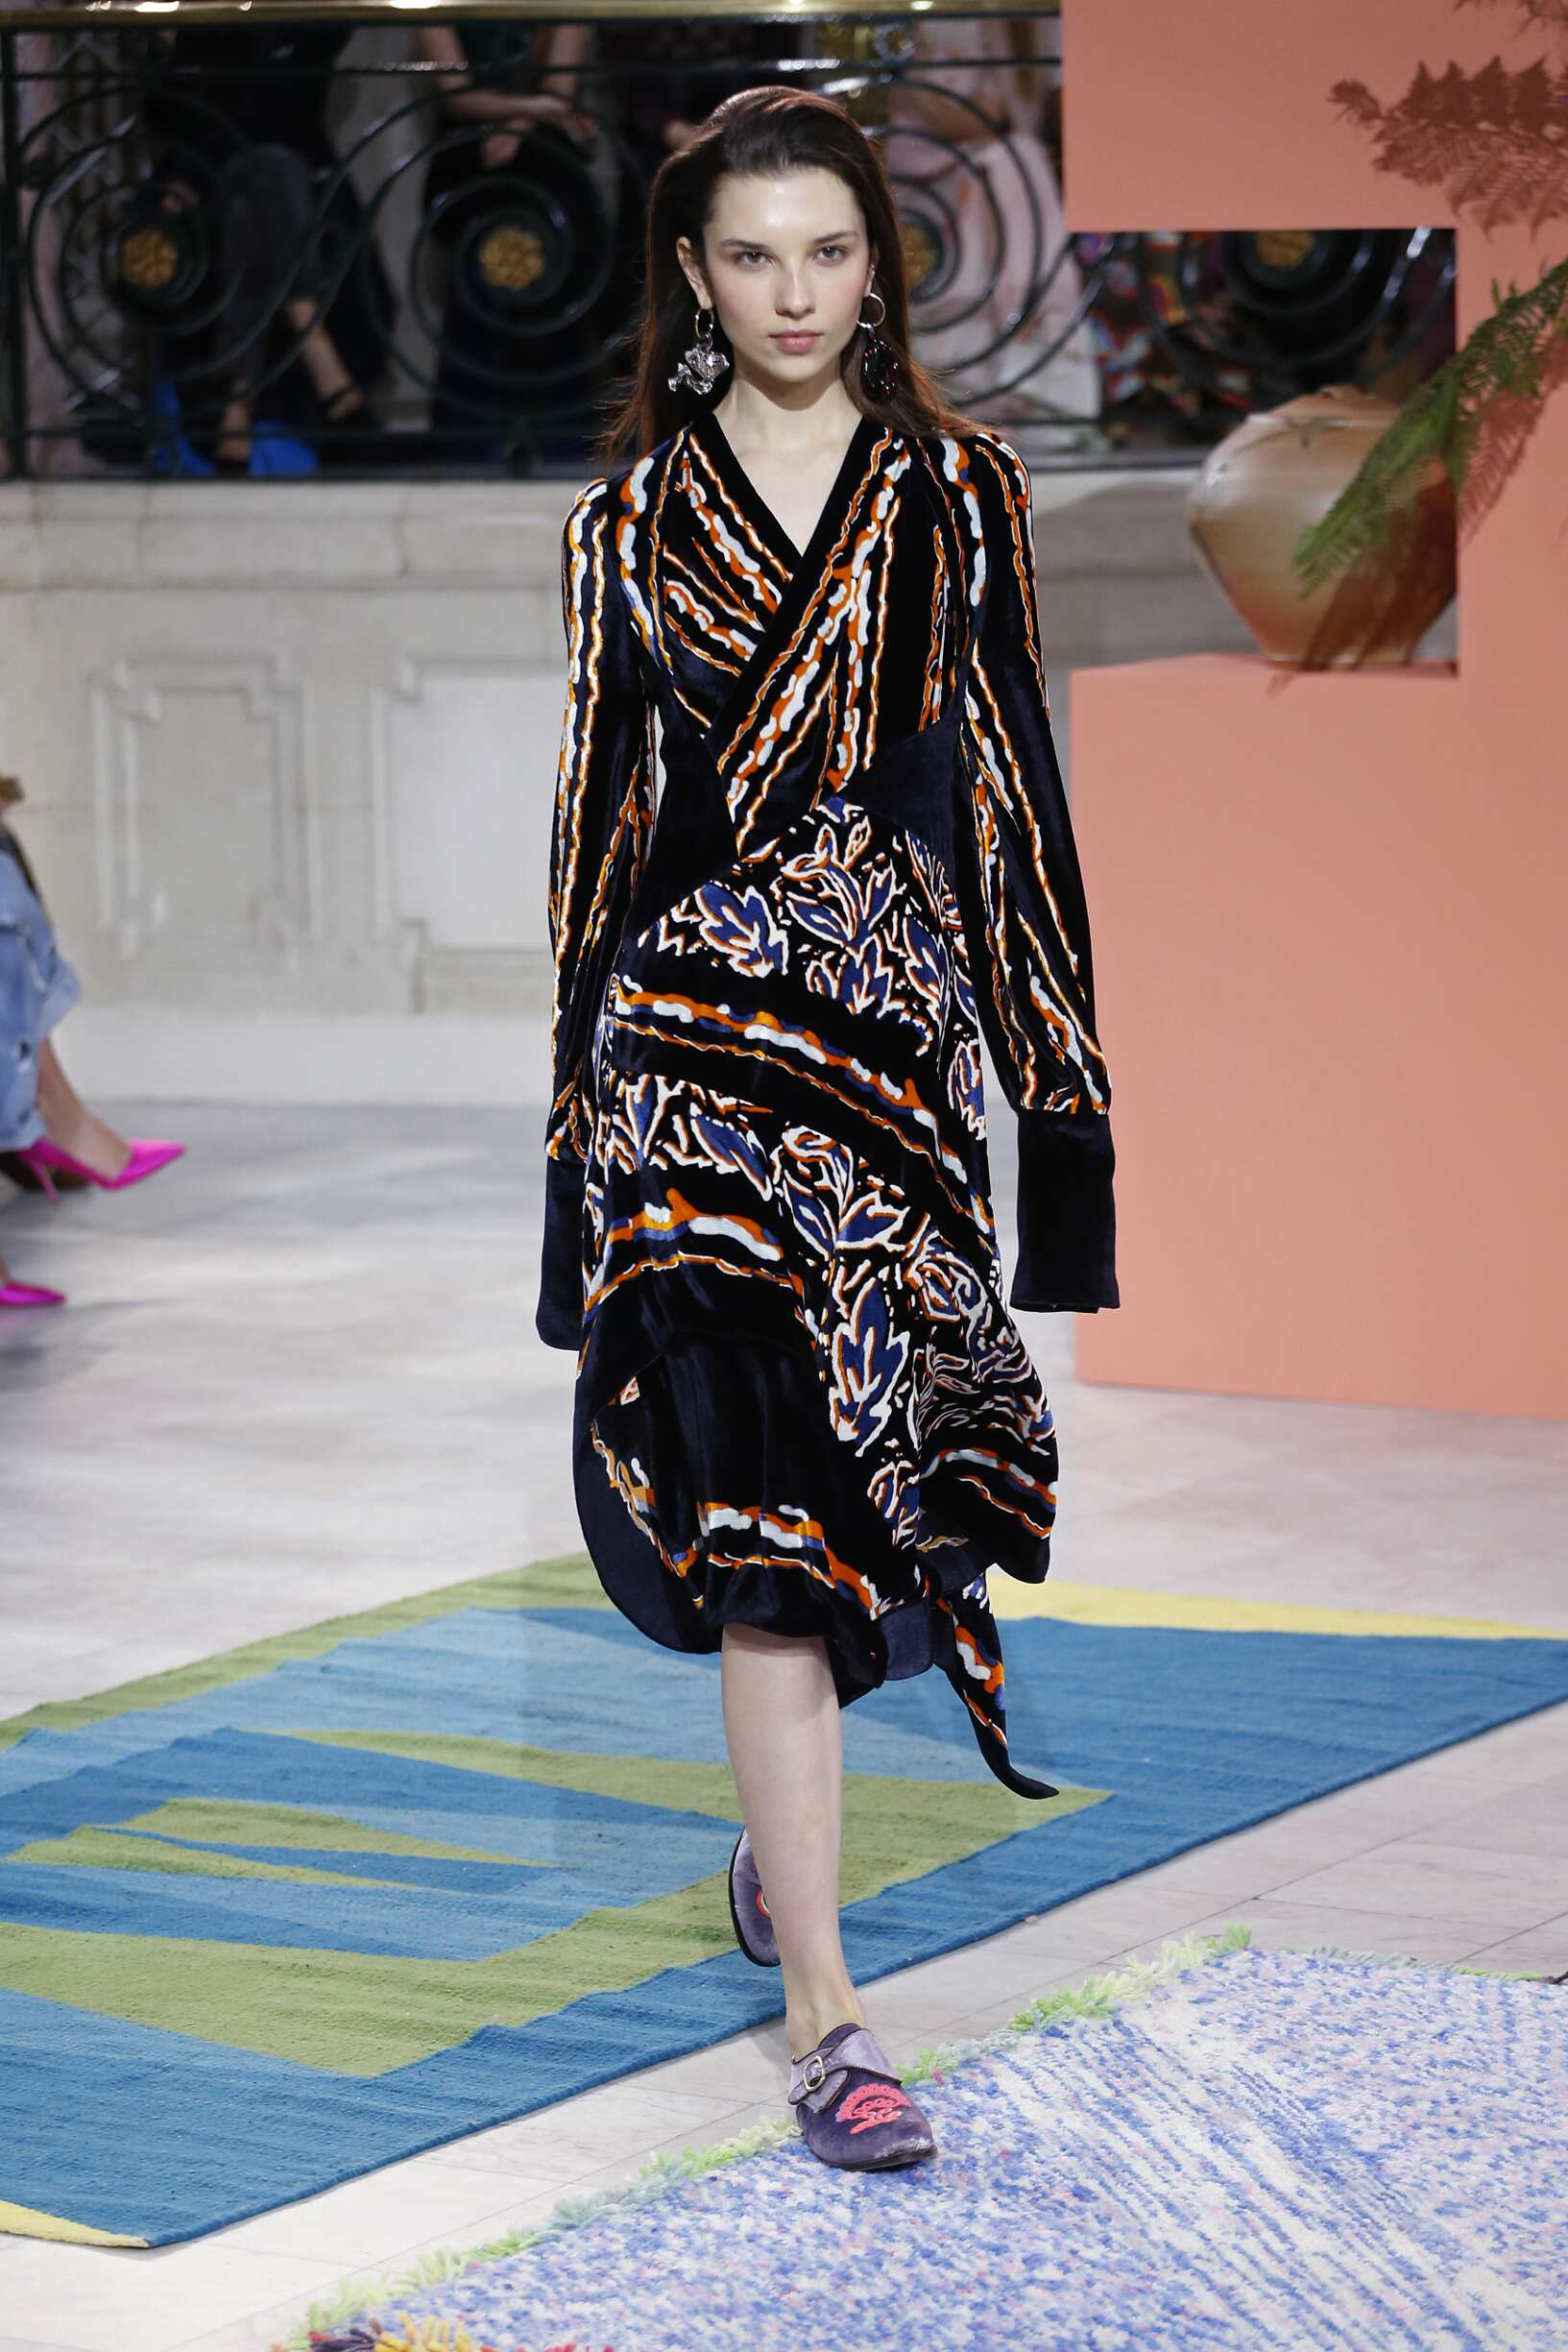 Peter Pilotto Winter 2017 Catwalk